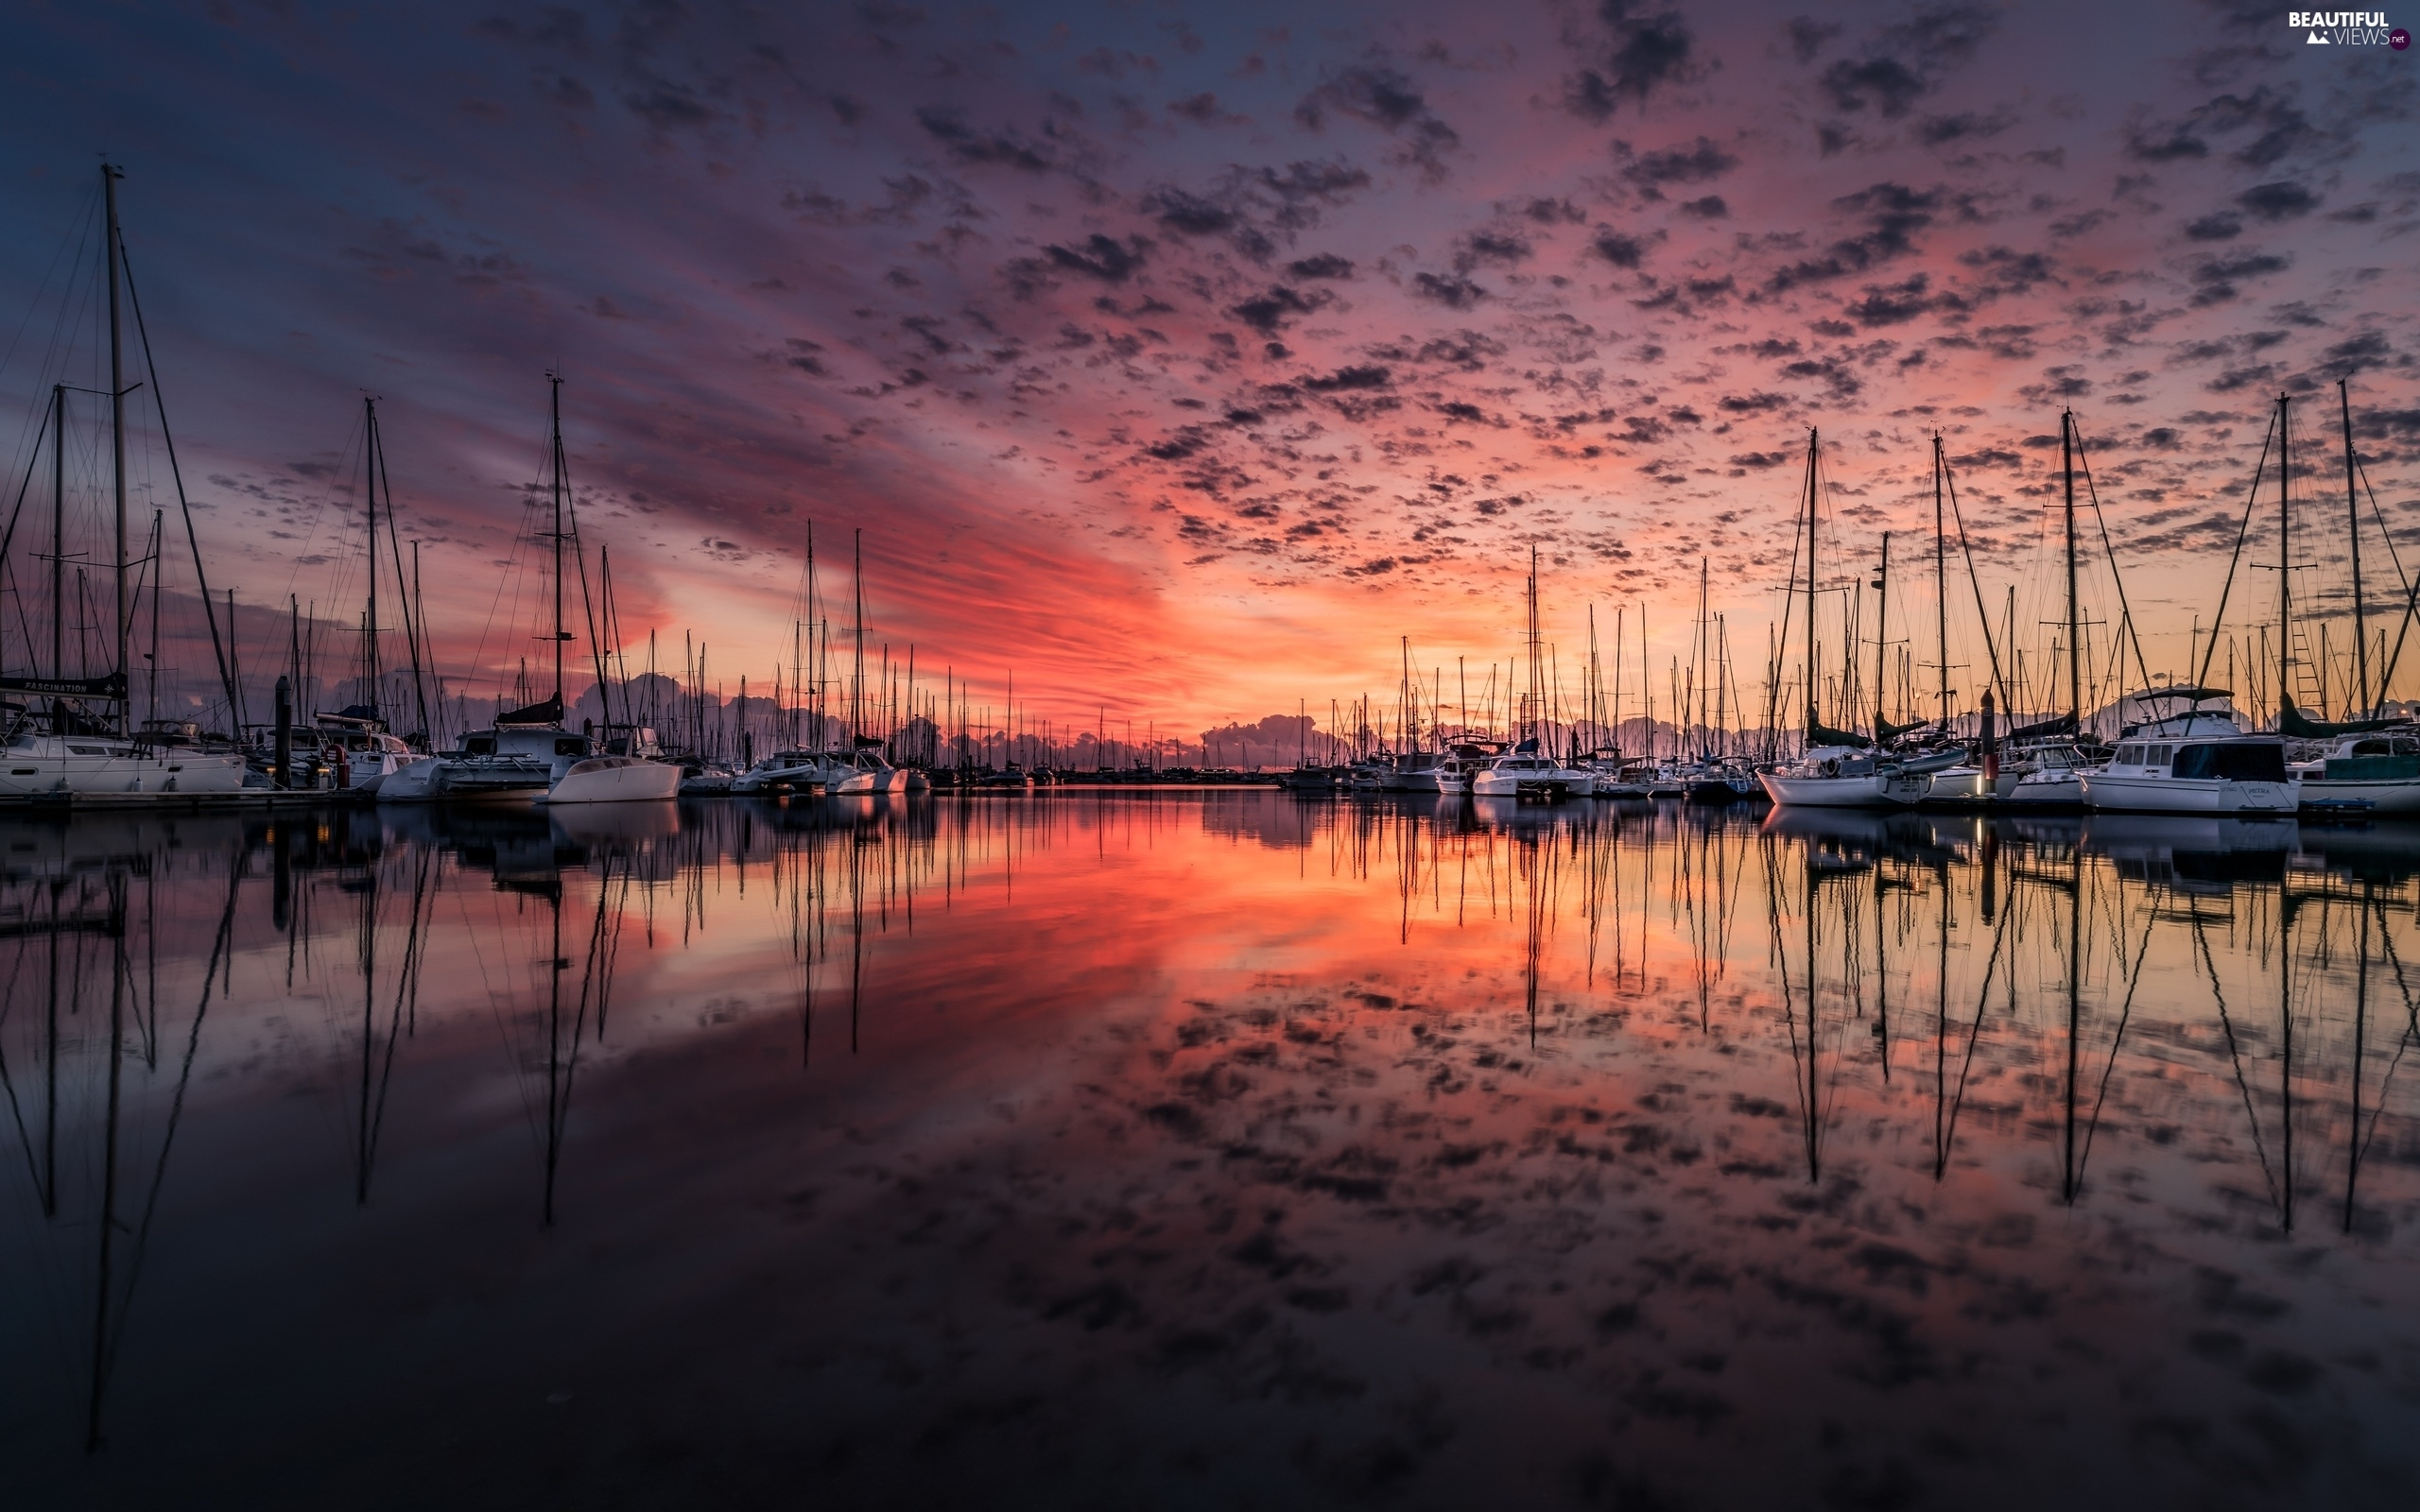 Great Sunsets, lake, Harbour, Yachts